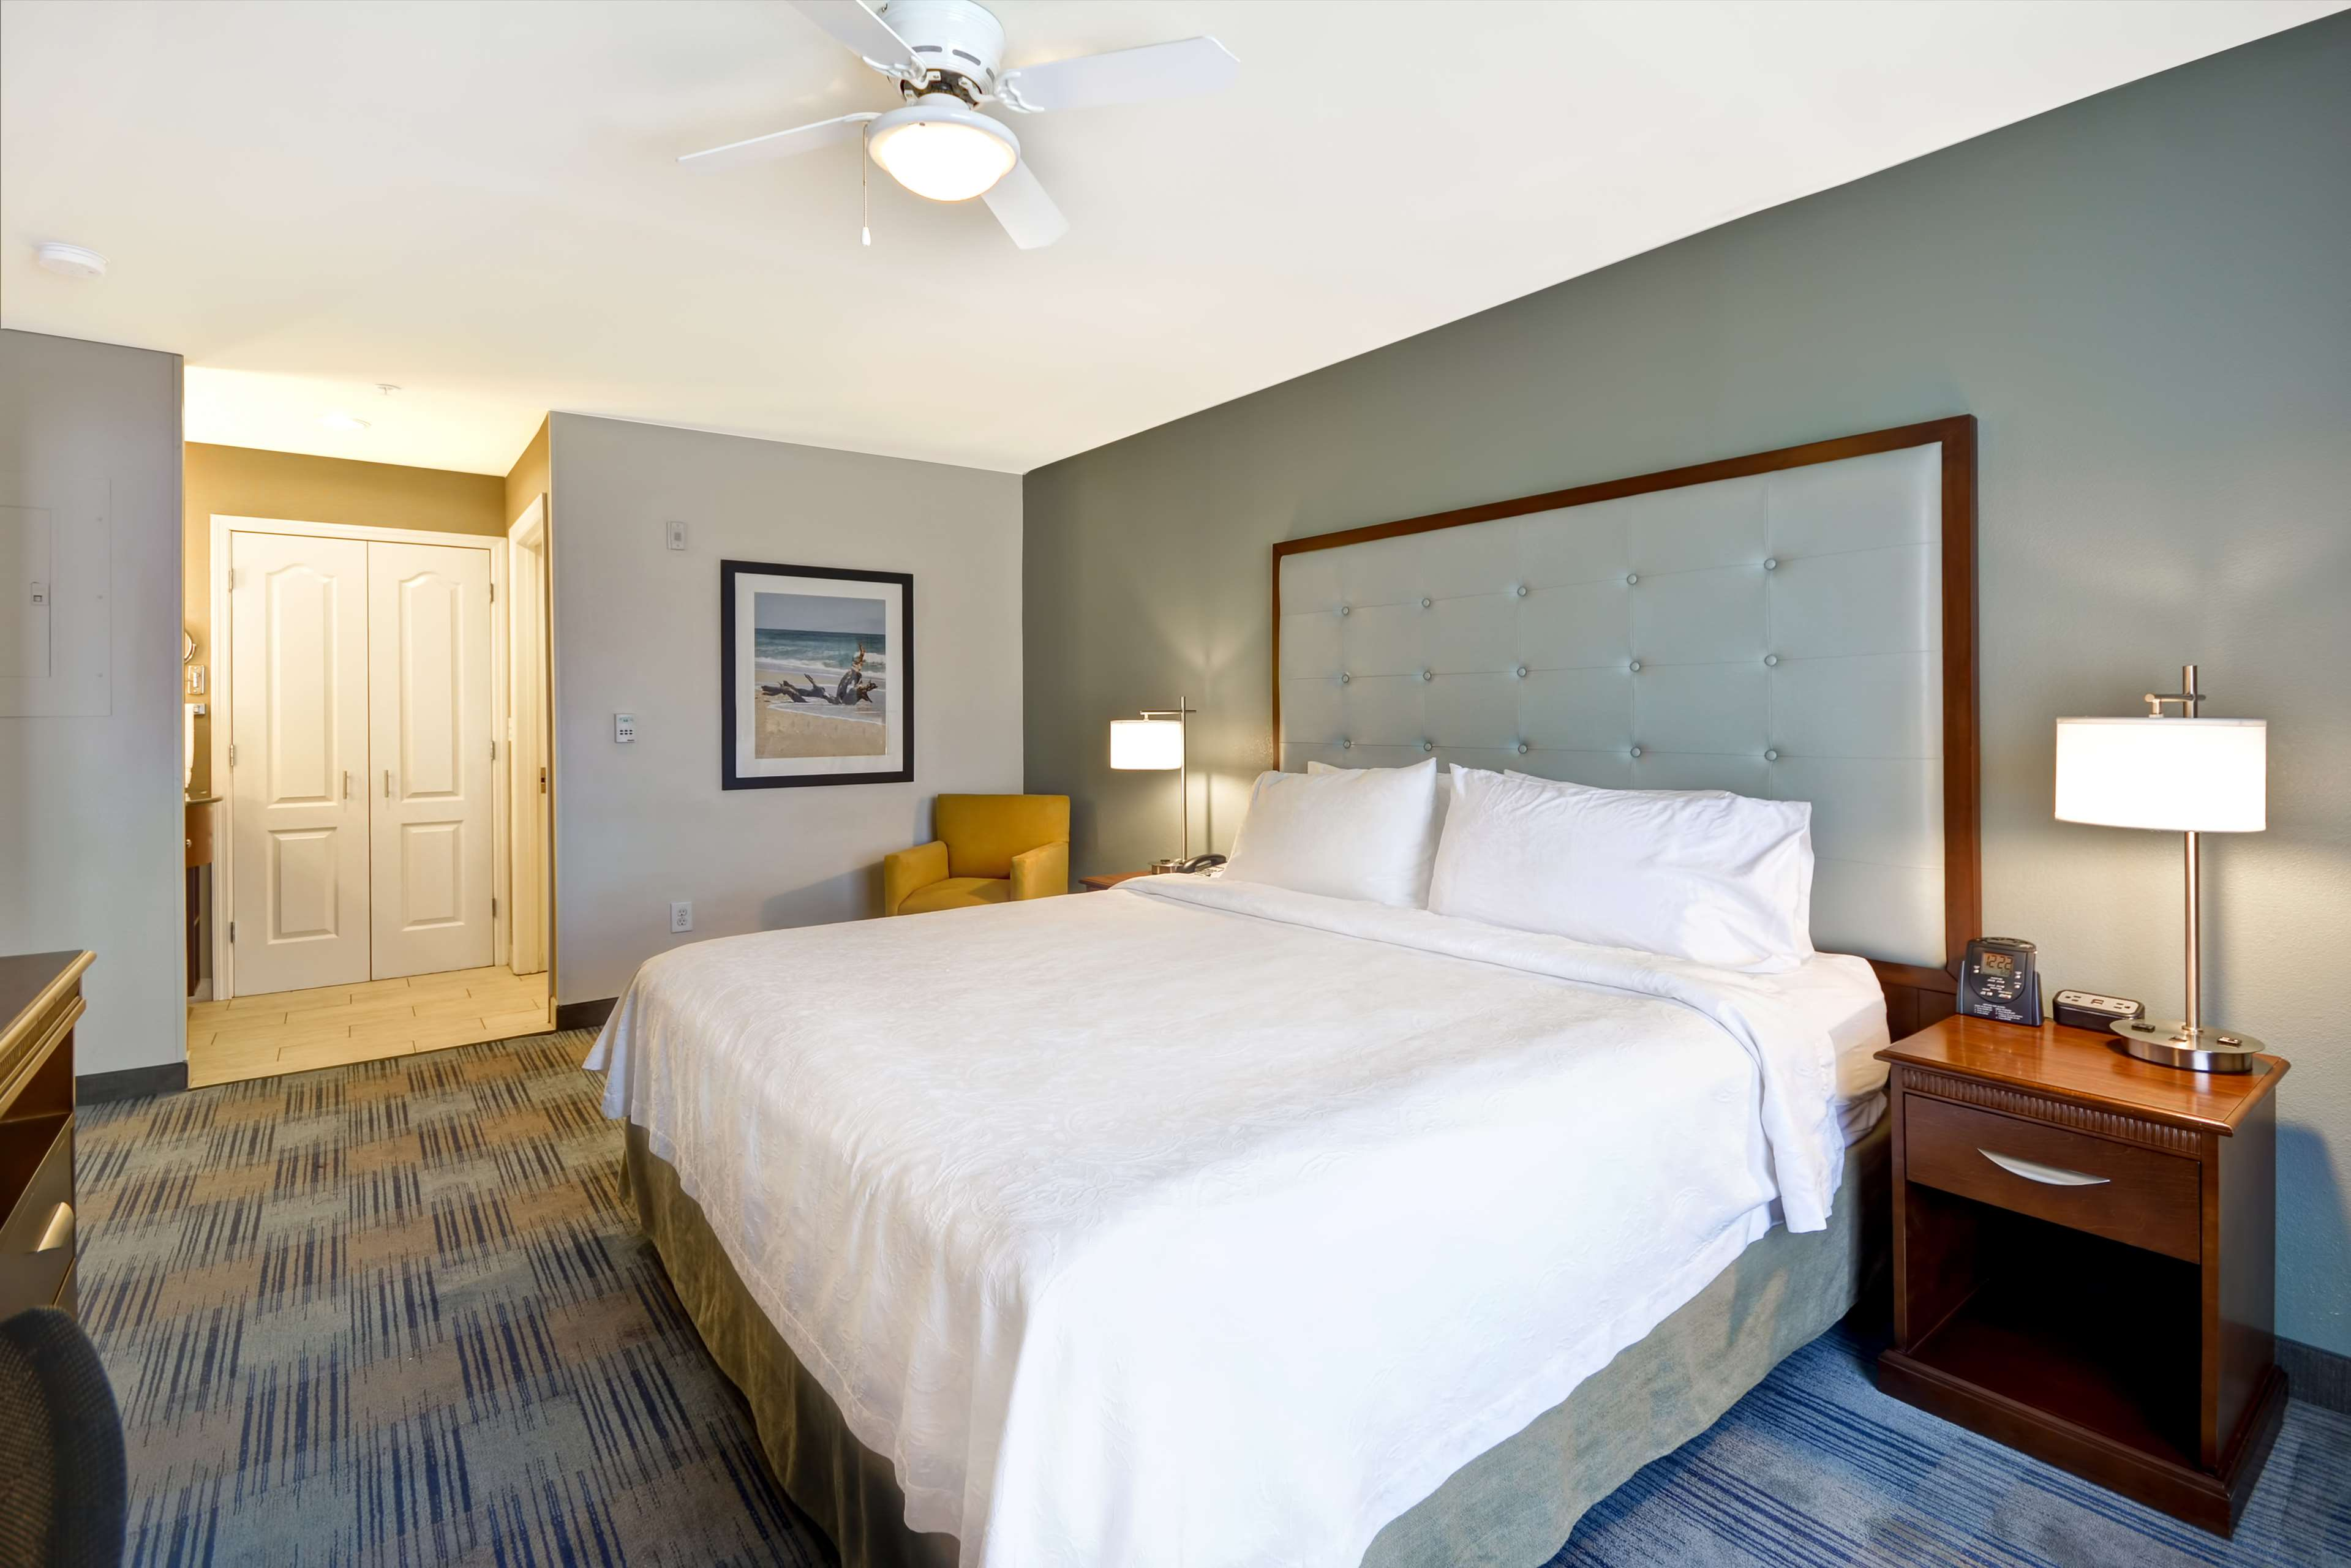 Homewood Suites by Hilton Wilmington/Mayfaire, NC image 28